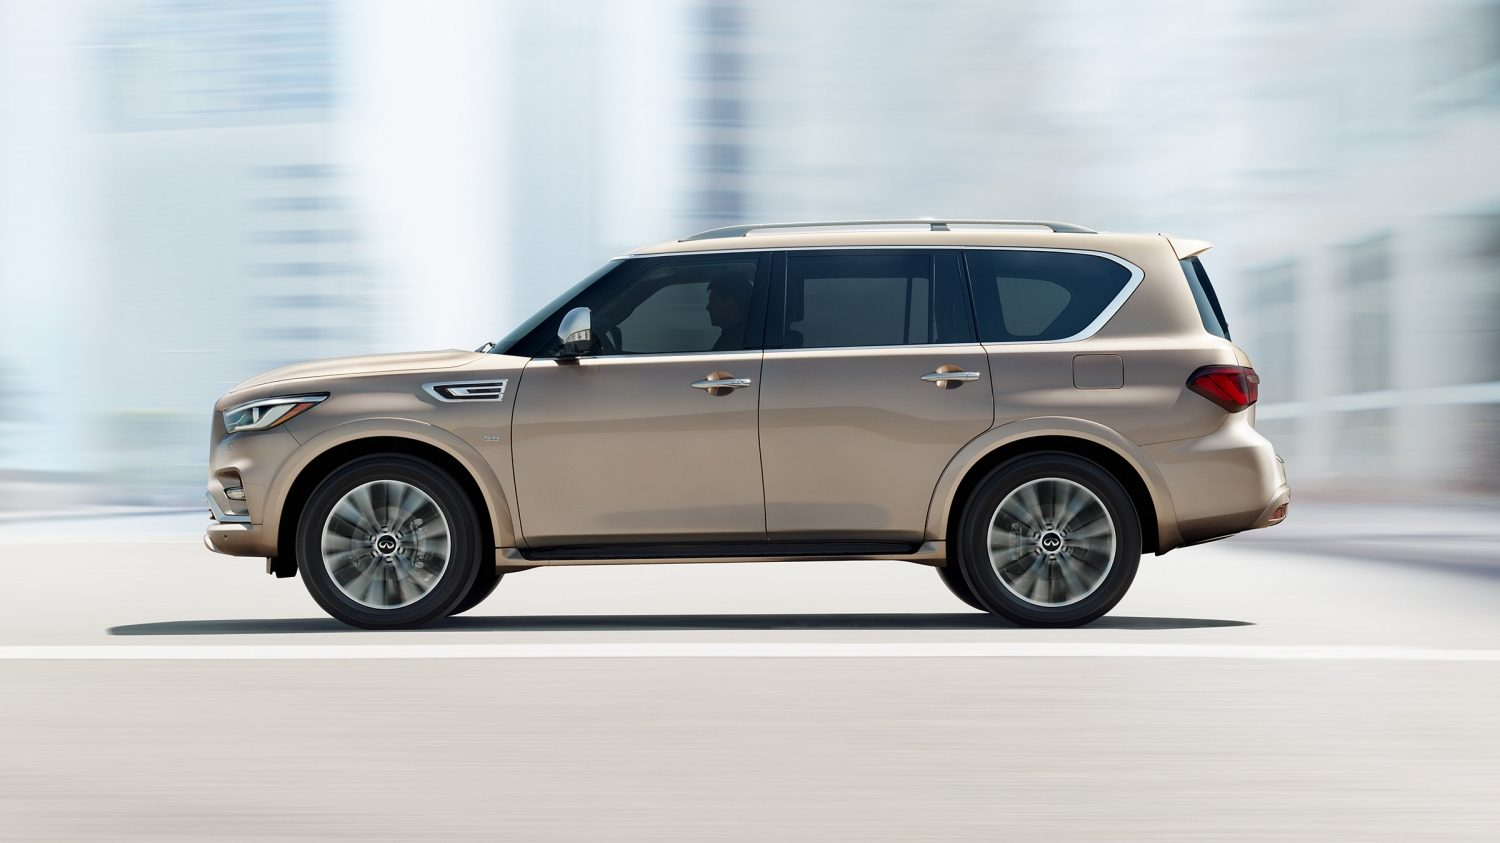 release infinity specs suv review rendered infiniti watch price date